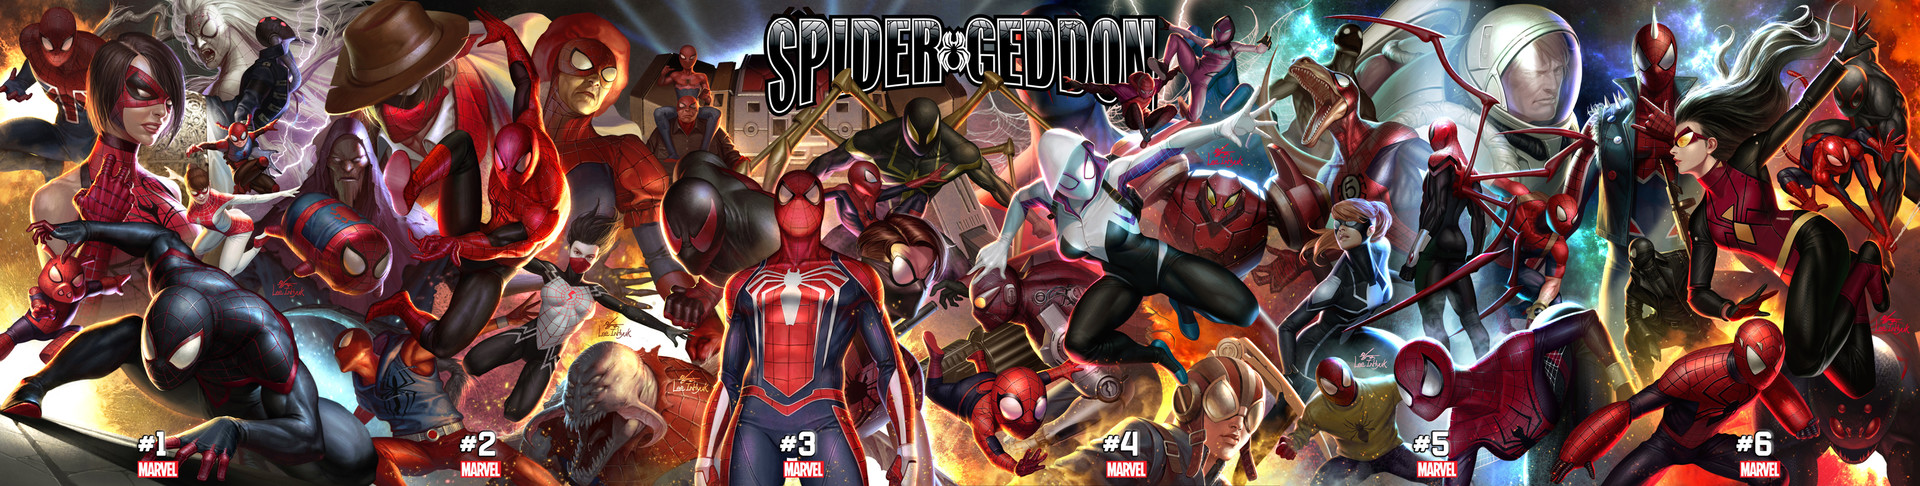 Inhyuk lee spider geddon 1 6